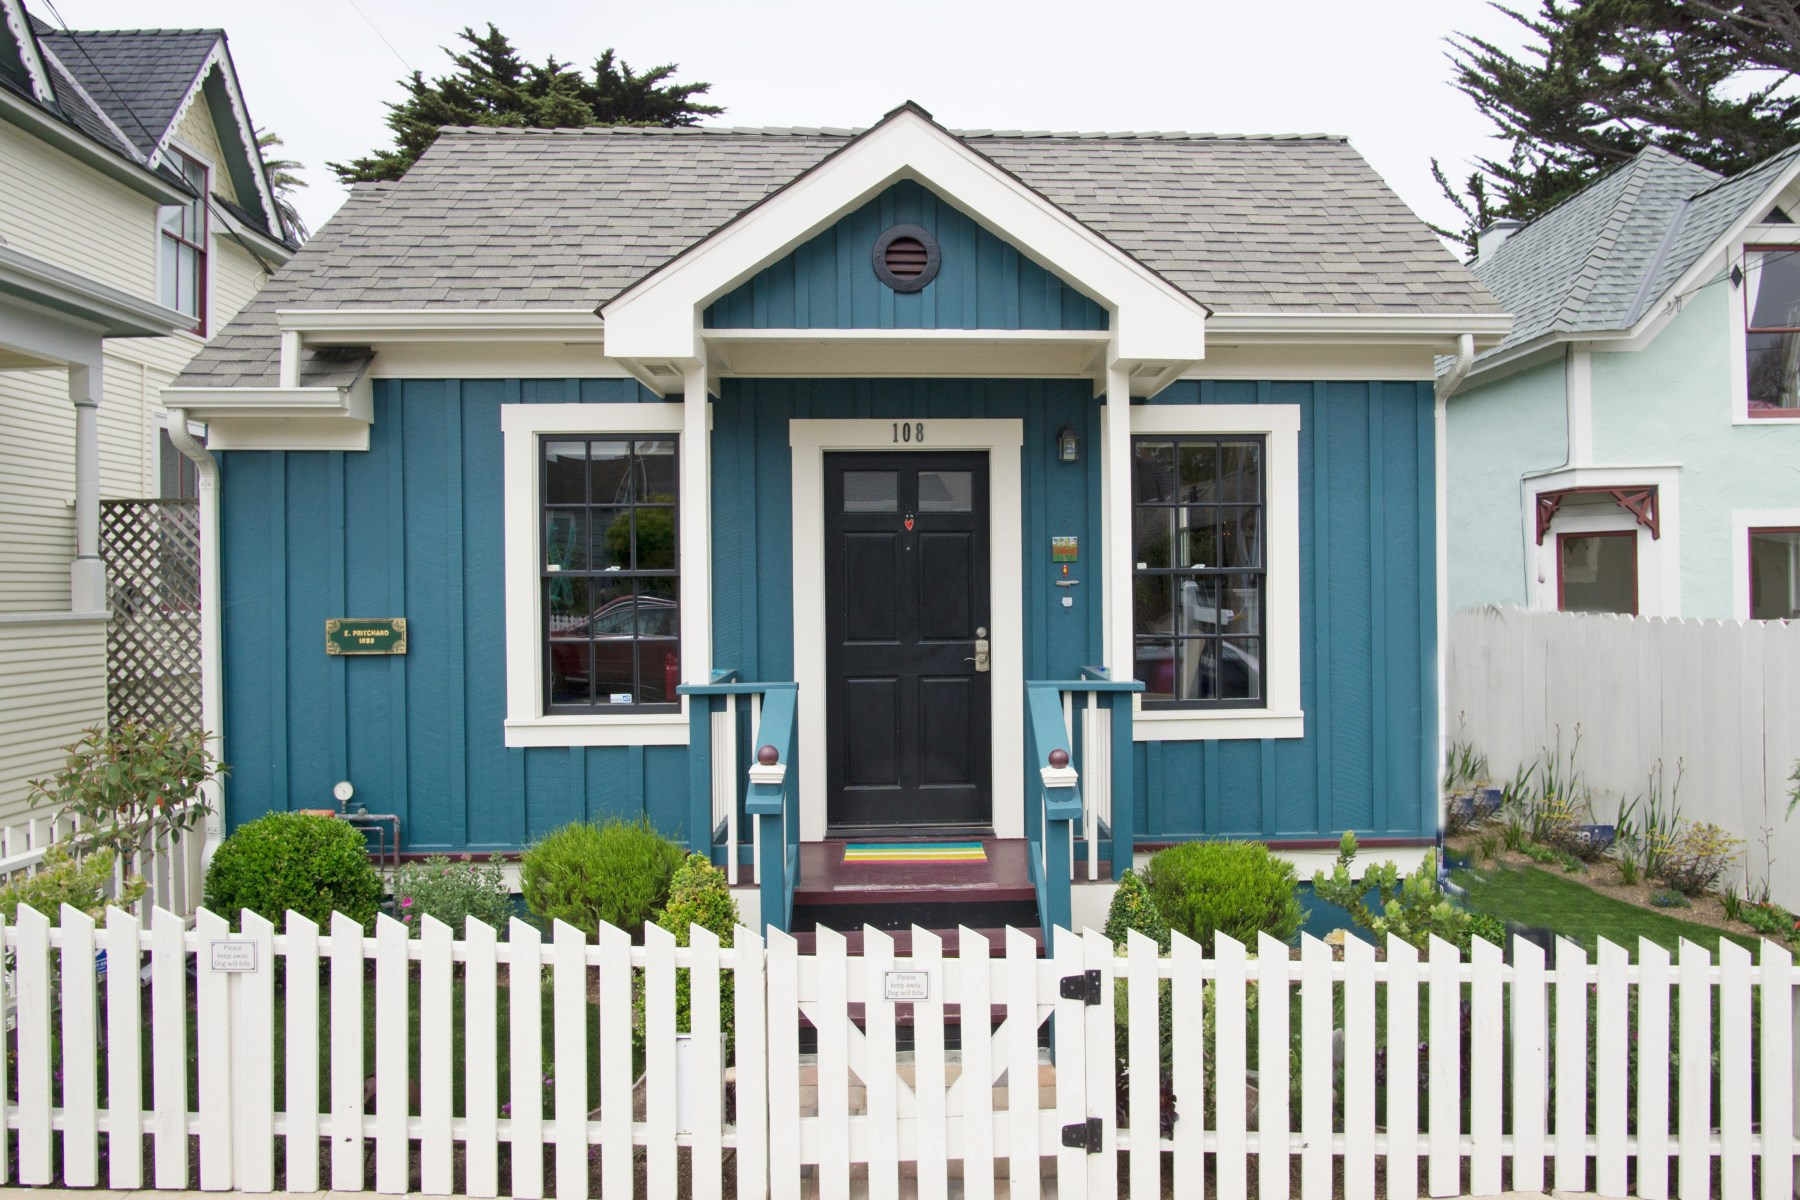 Single Family Home for Sale at 108 19th Street, Pacific Grove Pacific Grove, California, 93950 United States